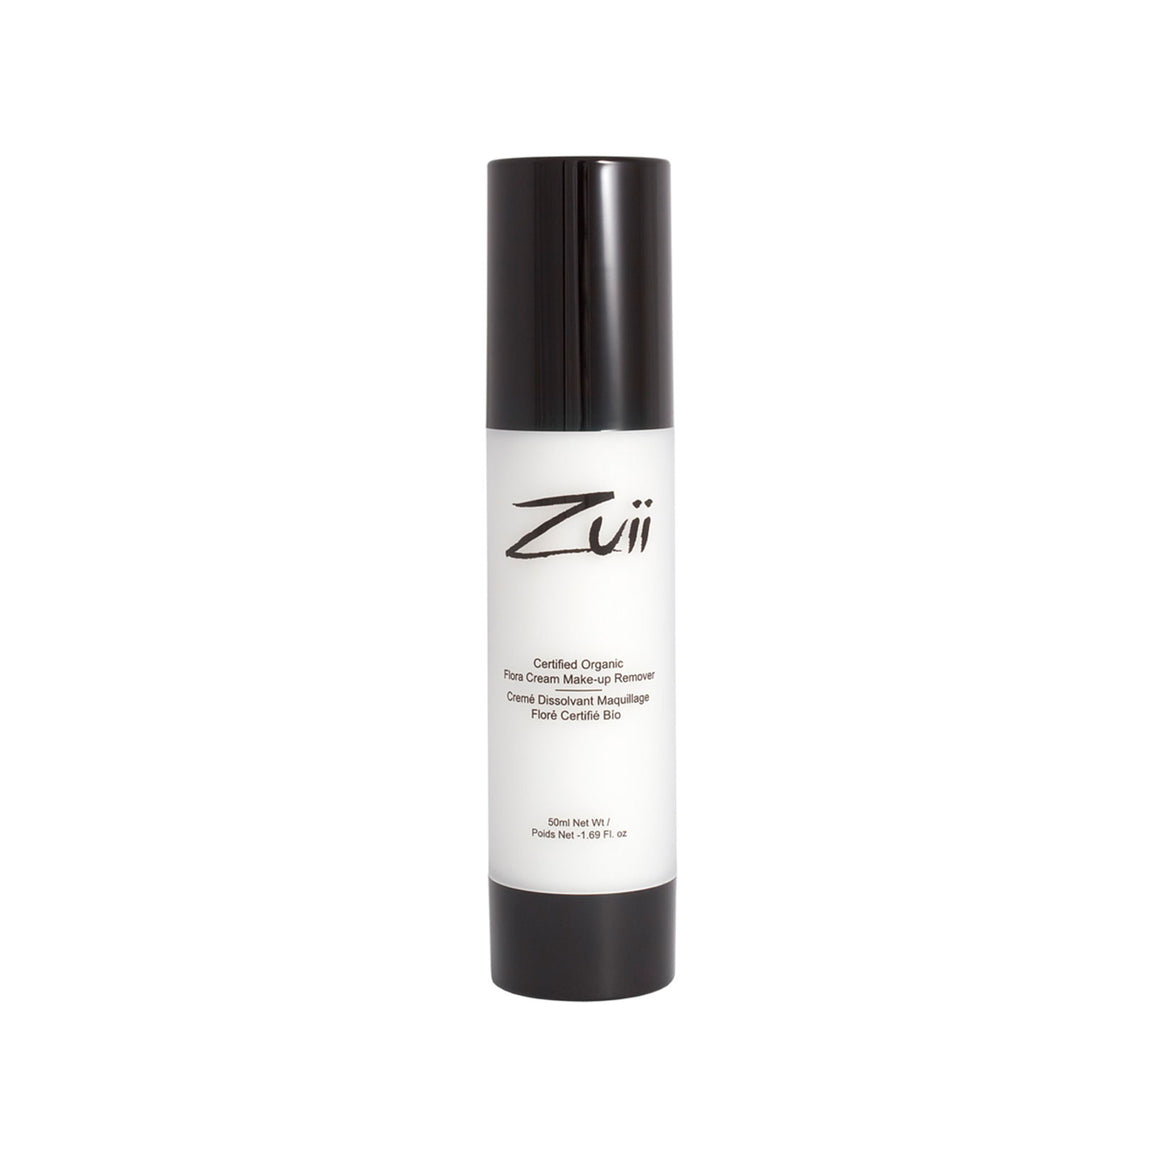 Zuii Certified Organic Make-up Remover - 50ml